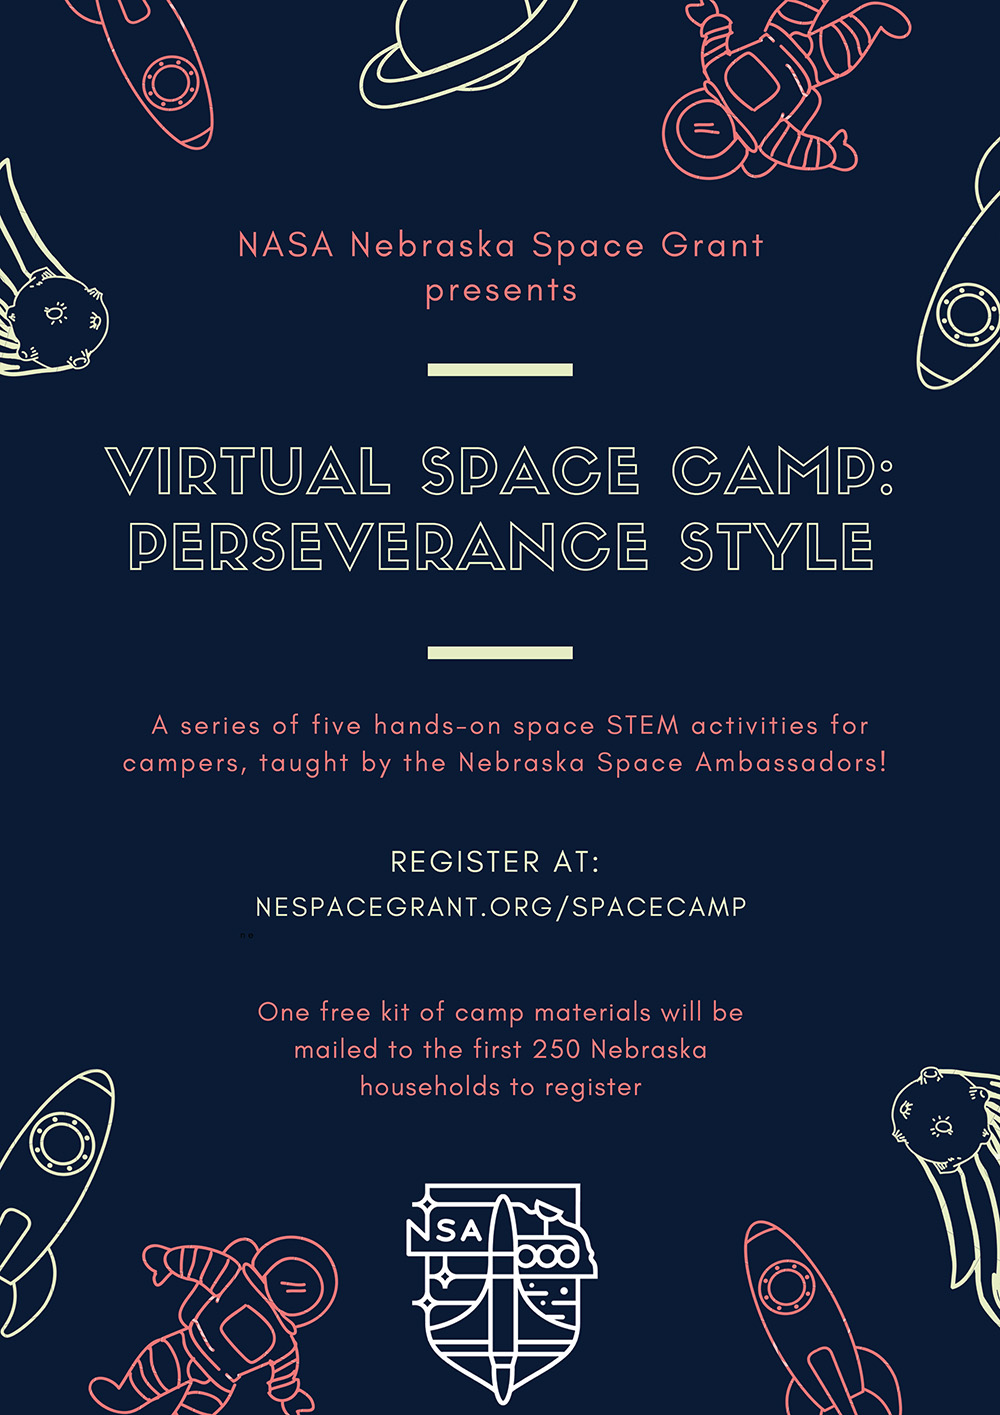 Virtual Space Camp Offers Hands On Stem Activities Announce University Of Nebraska Lincoln